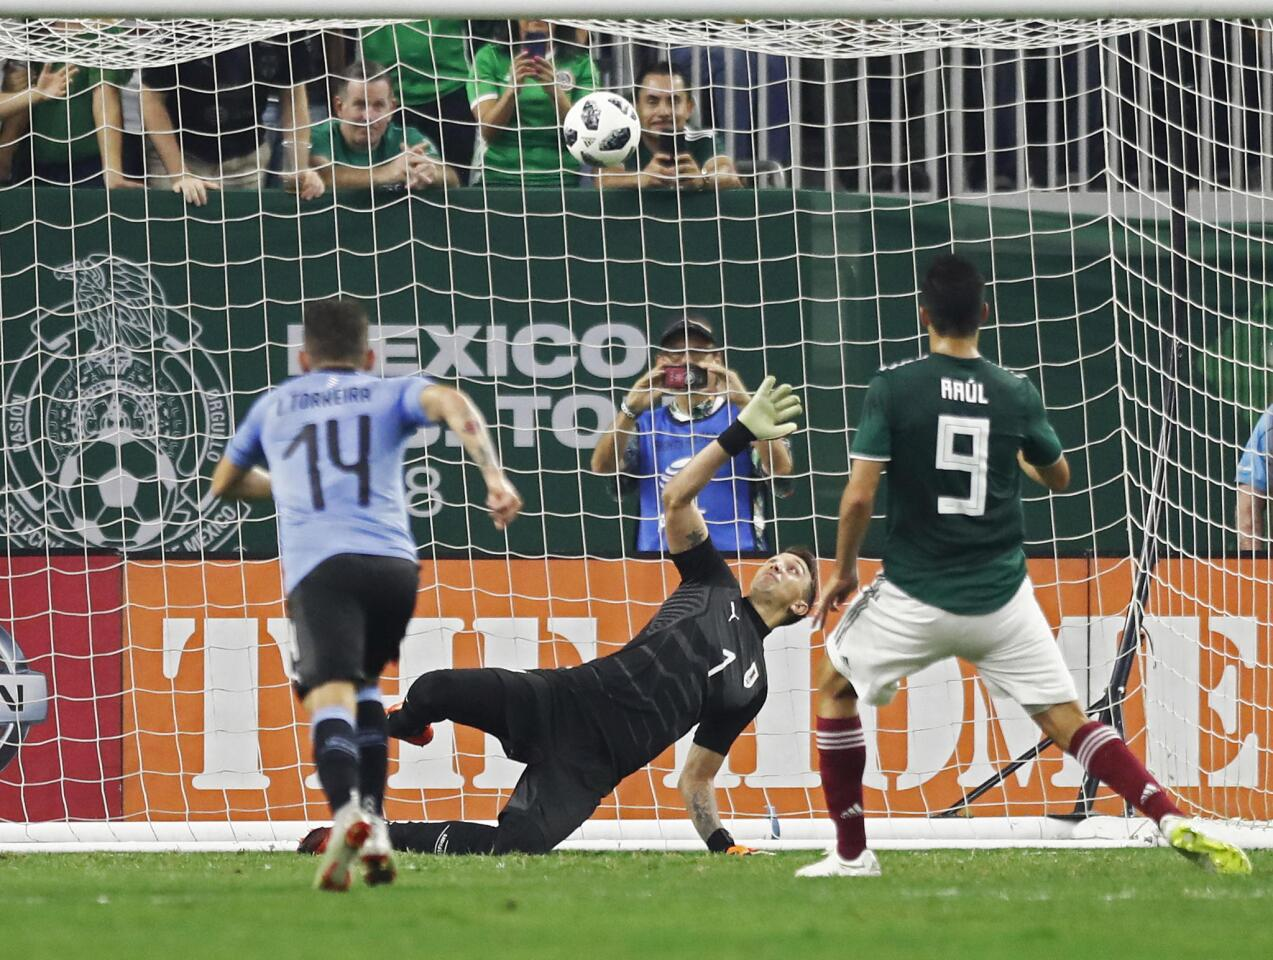 LWS113. Houston (United States), 07/09/2018.- Mexico player Raul Jimenez (R) kicks the ball in for a goal against Uruguay goalkeeper Fernando Muslera (C) in the first half of the friendly soccer match between Mexico and Uruguay at NRG Stadium in Houston,Texas, USA, 07 September 2018. (Futbol, Amistoso, Estados Unidos) EFE/EPA/LARRY W. SMITH ** Usable by HOY and SD Only **